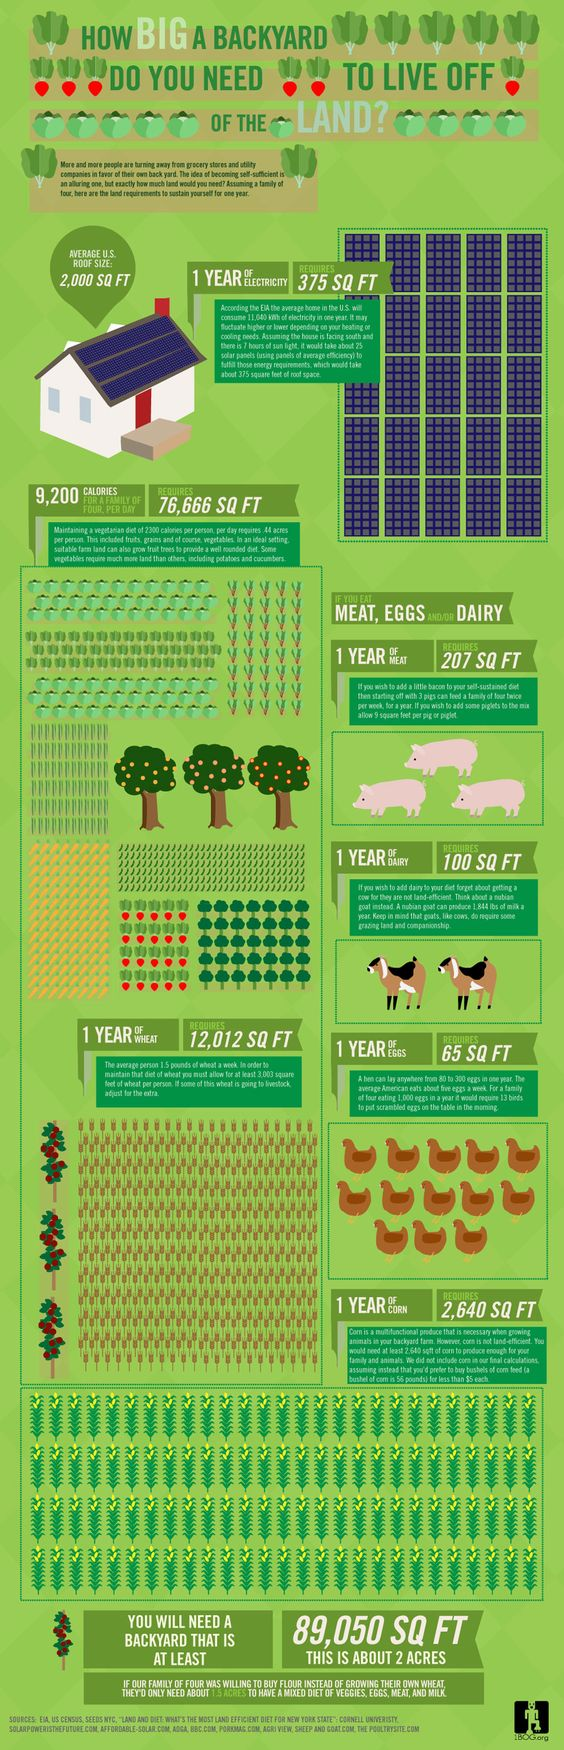 What You Need to Live Off the Land